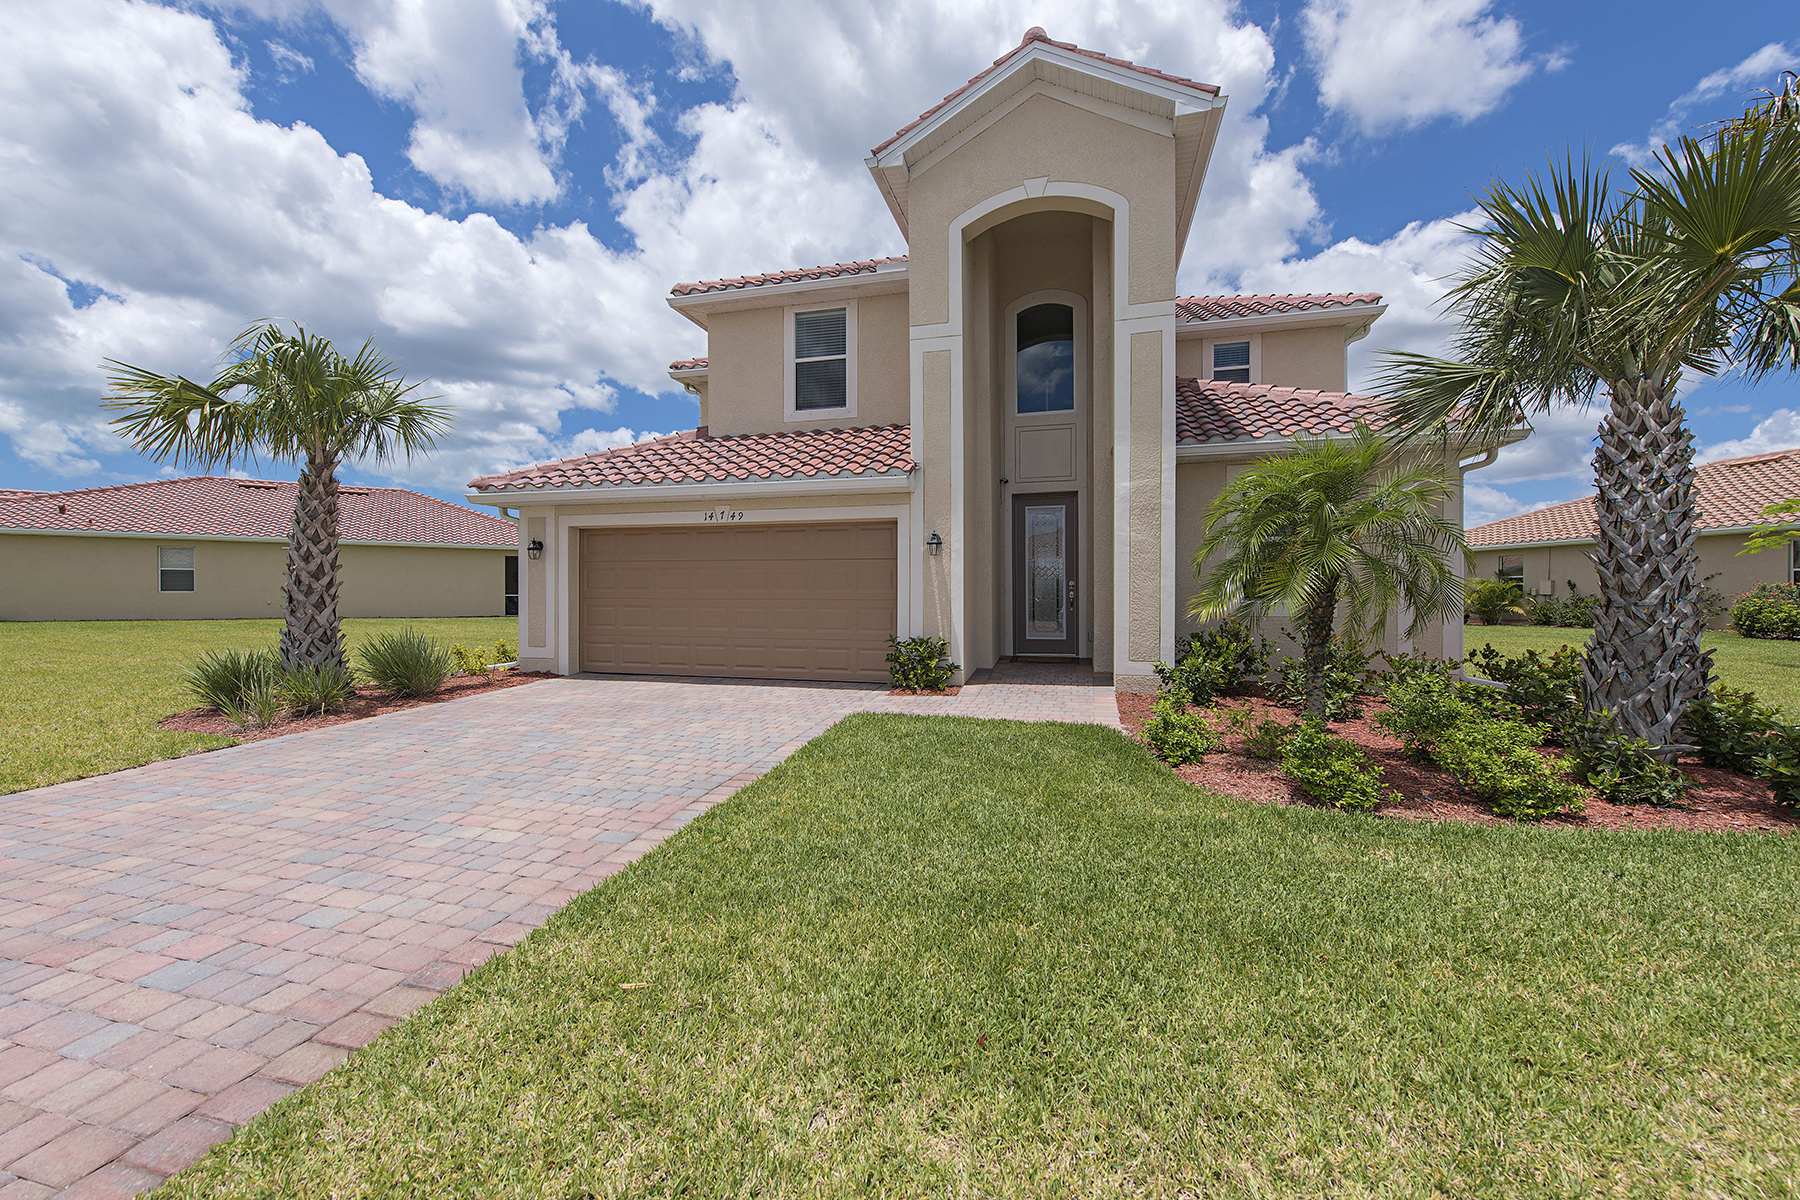 Single Family Home for Sale at NAPLES - REFLECTION LAKES 14749 Cranberry Ct Naples, Florida 34114 United States